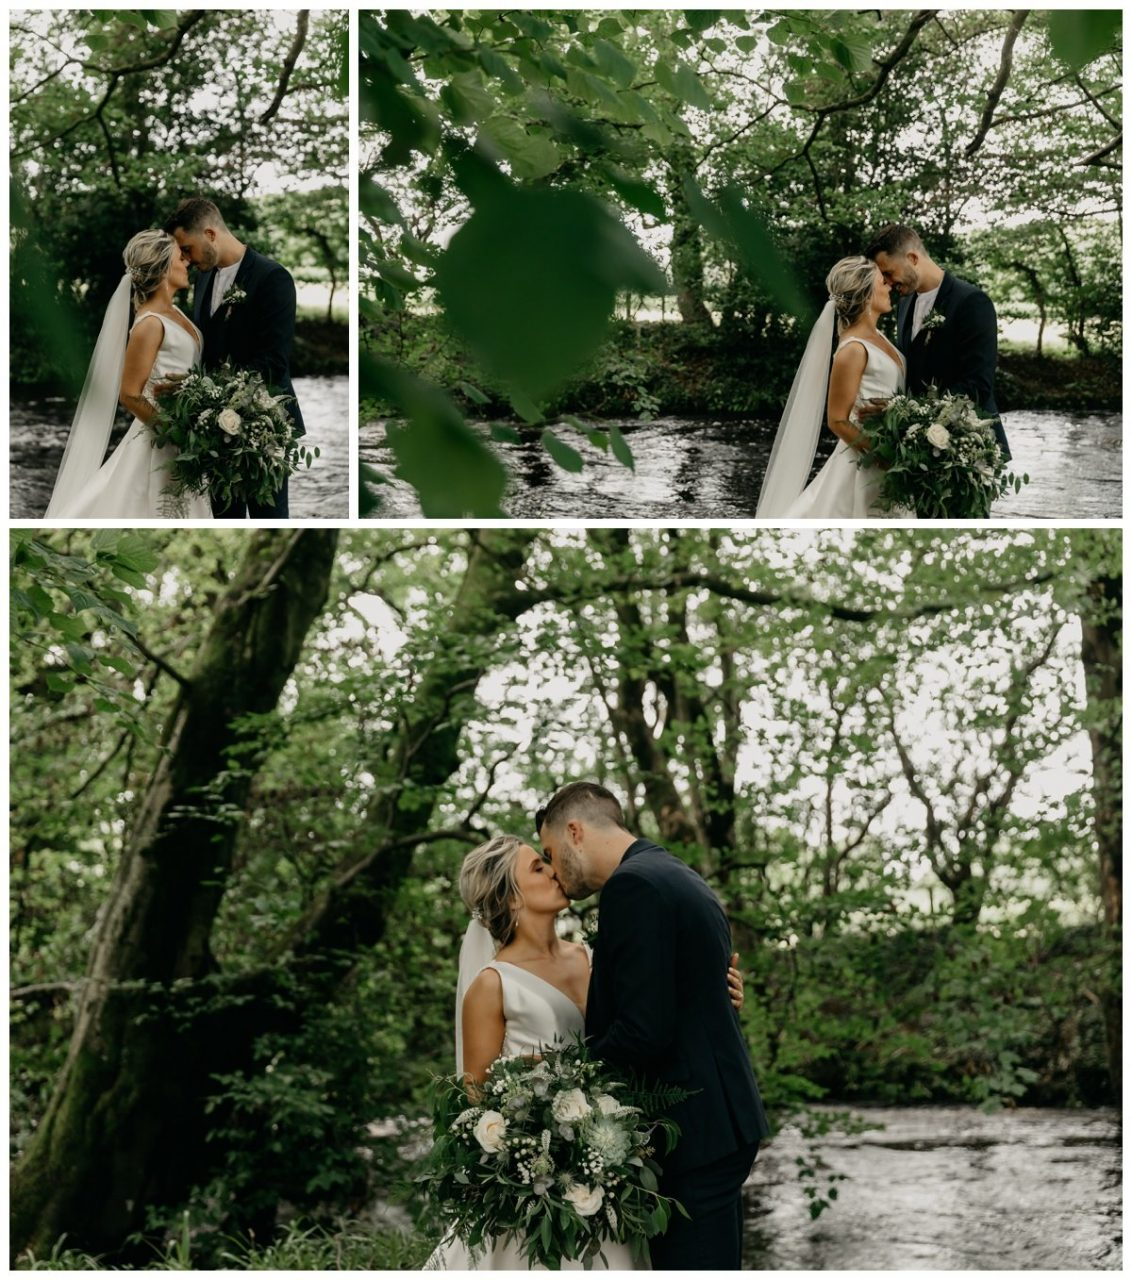 raceview mill wool tower wedding photographer northern ireland 0081